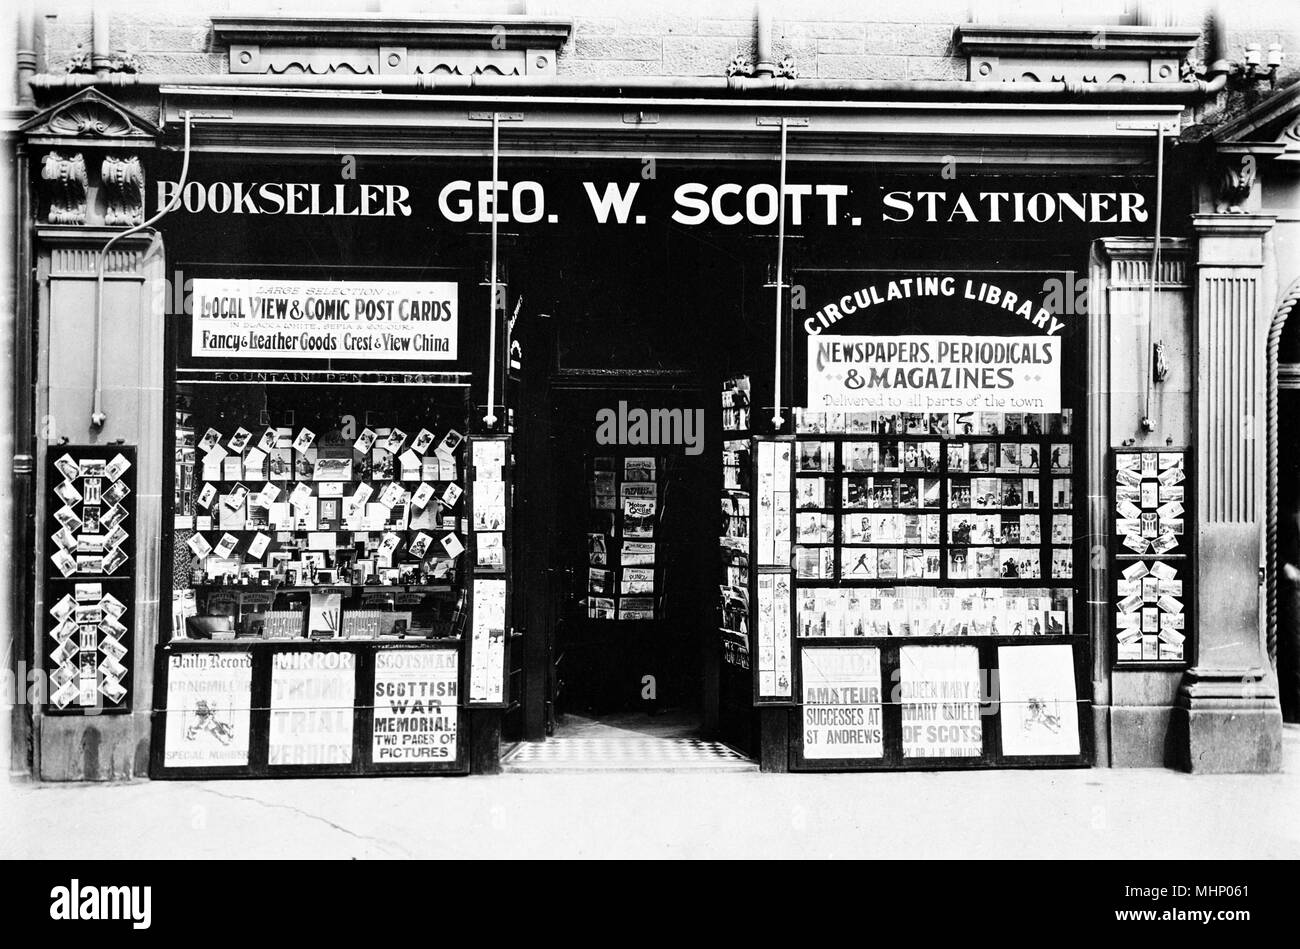 Premises of Geo W Scott, Bookseller and Stationer, somewhere in Scotland, with newspaper headlines on display outside, postcards in the left window and circulating library books in the right window.      Date: circa 1930s - Stock Image